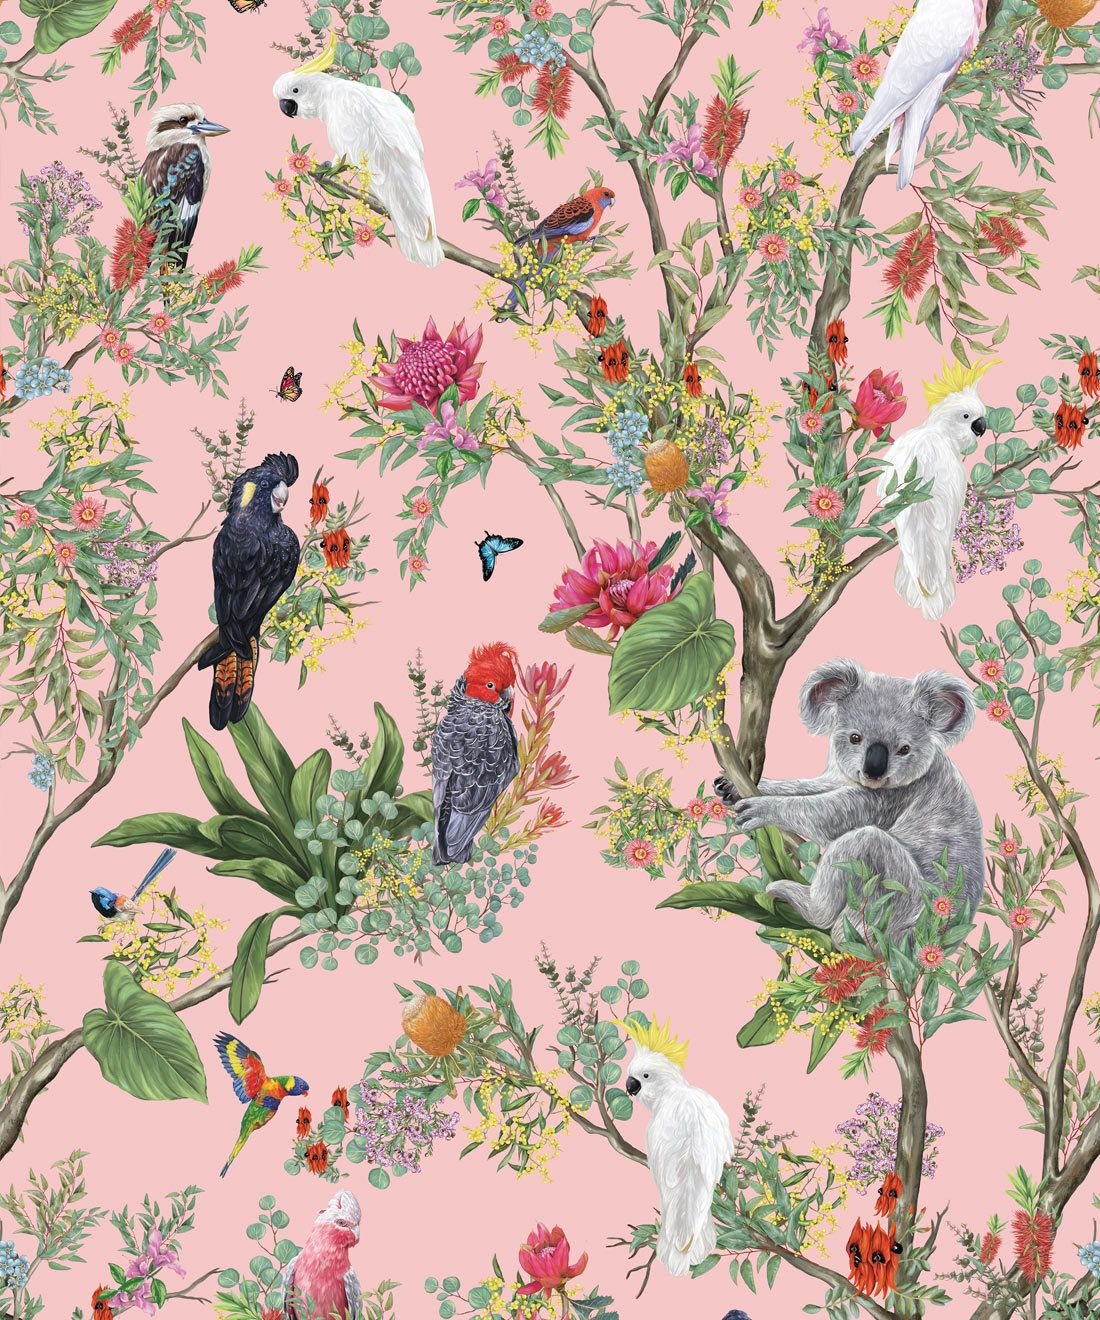 Australia Wallpaper • Cockatoos, Koalas, Parrots, Finches • Milton & King USA • Coral Wallpaper Swatch